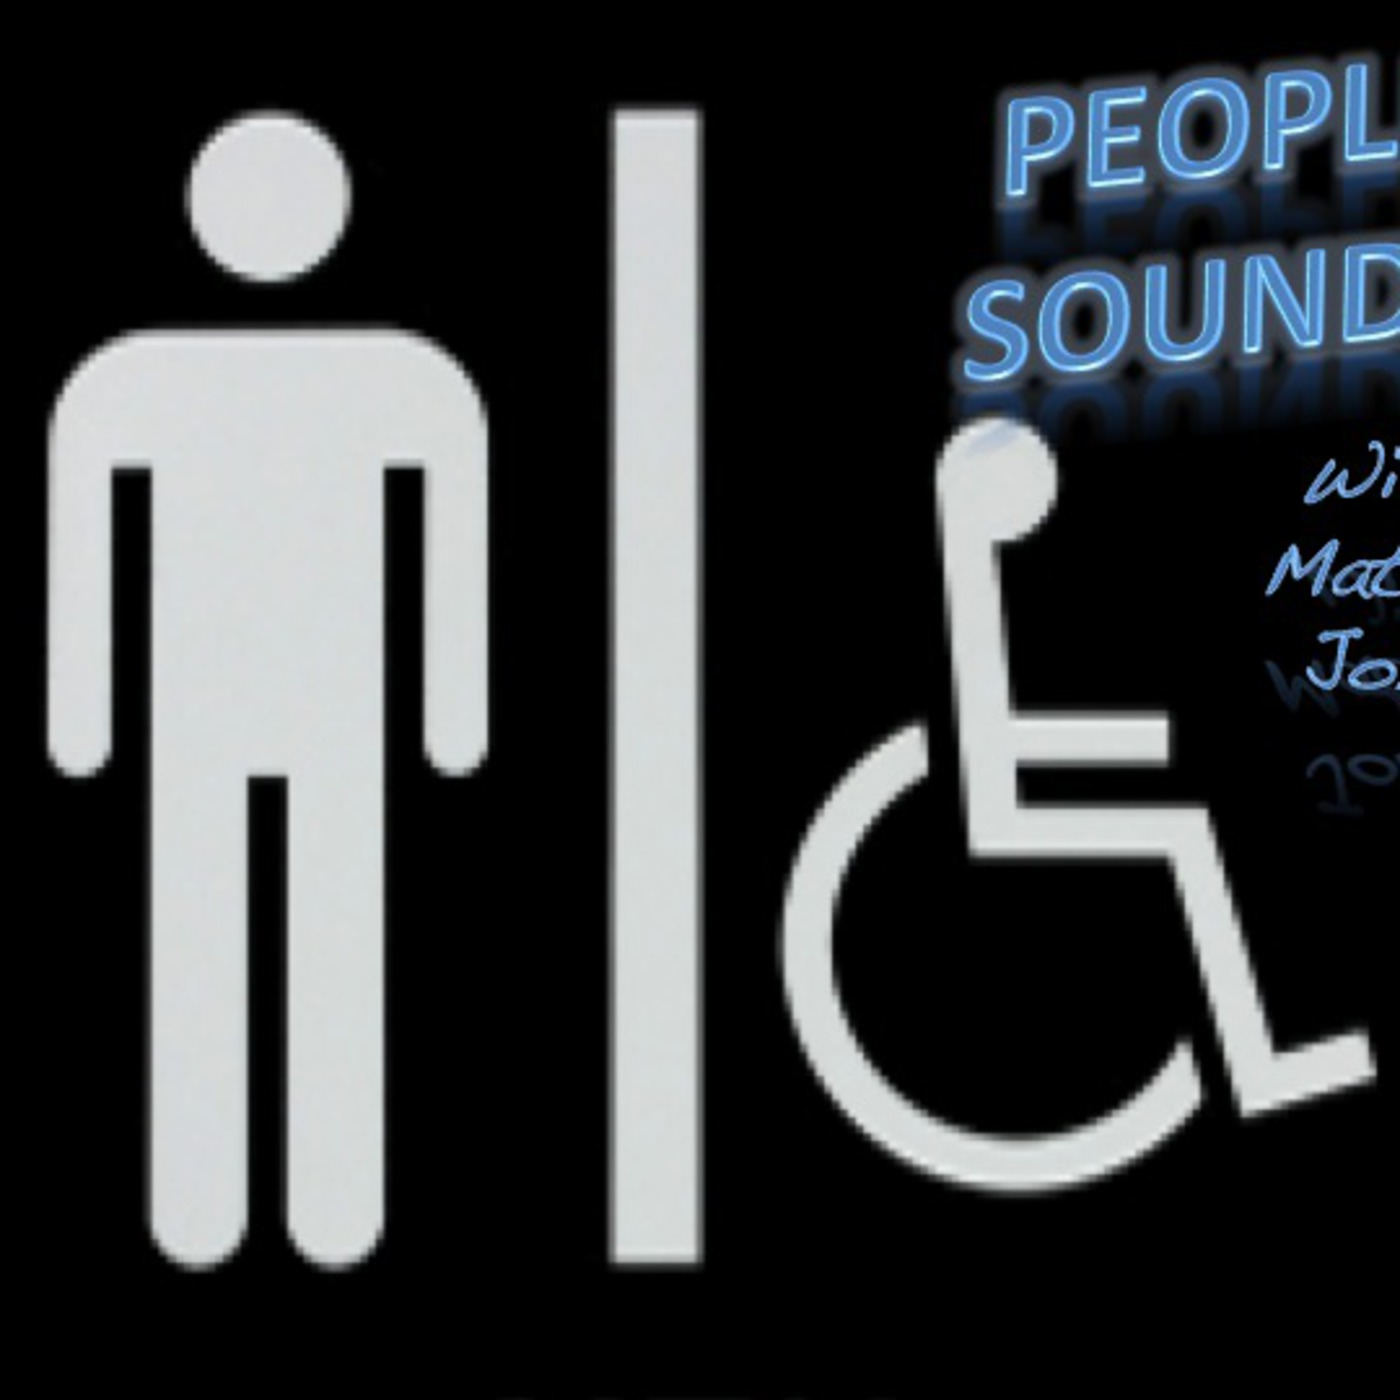 People Sounds w/ Matt & John